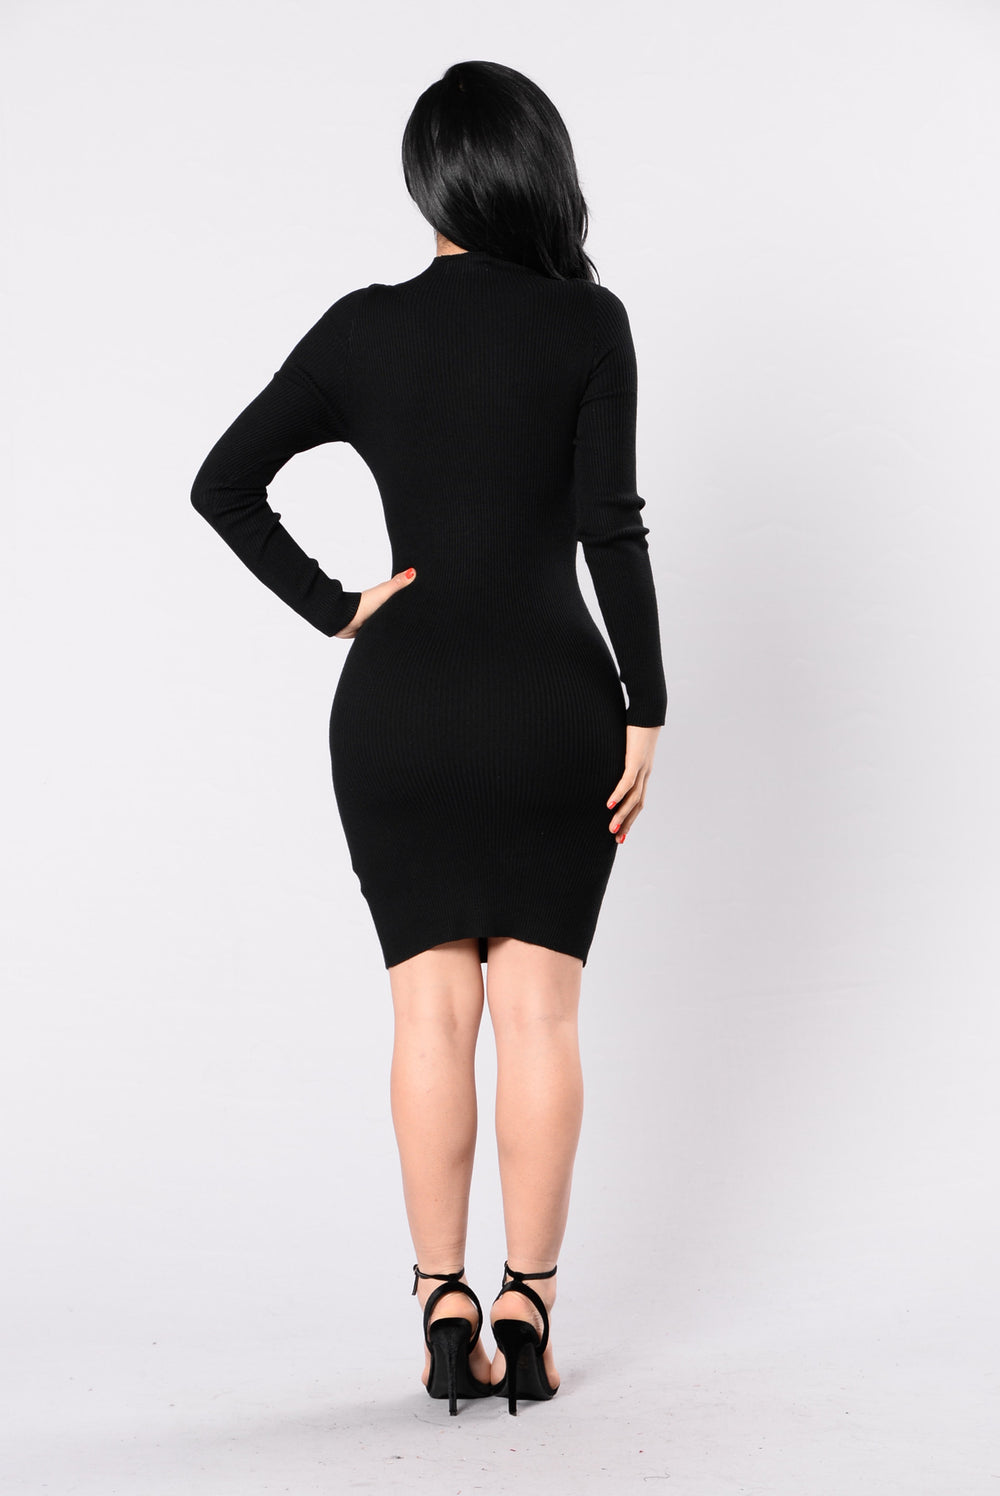 I Stay In Love Dress - Black